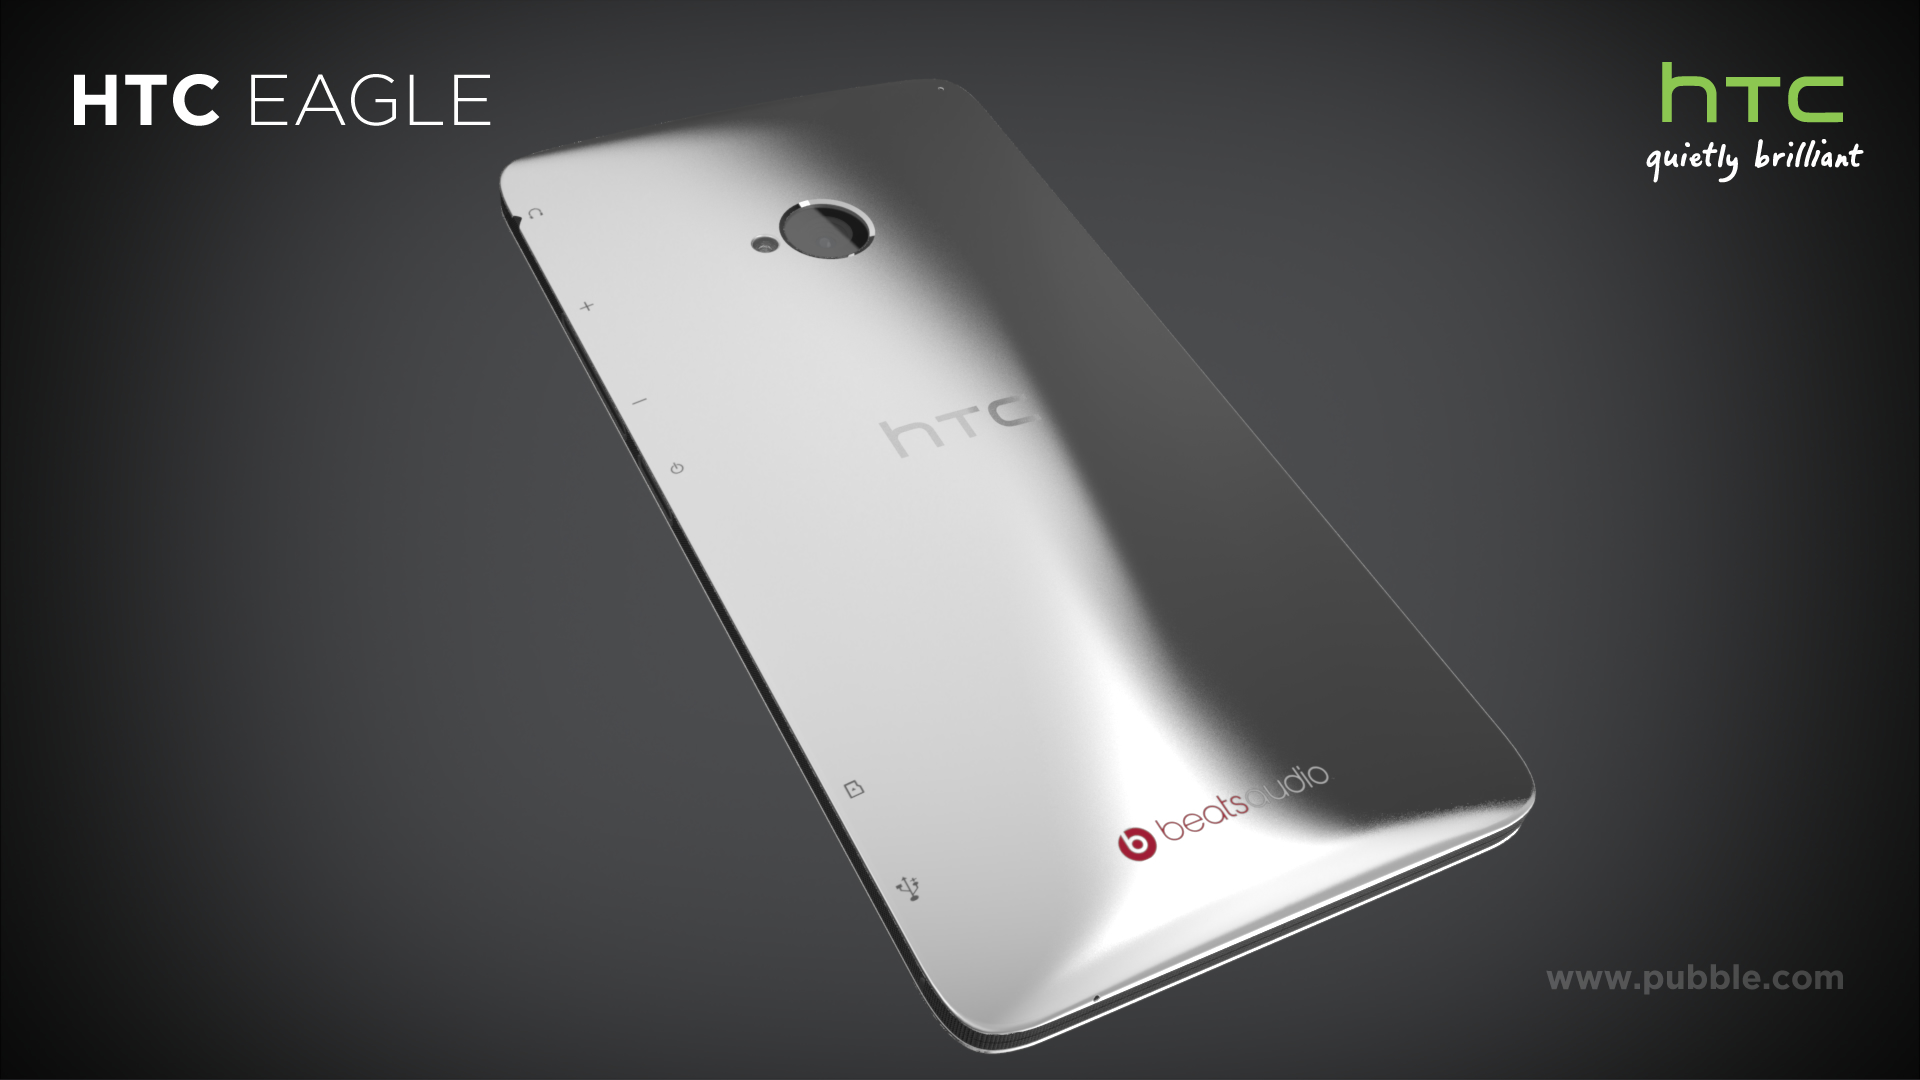 HTC Eagle - Back angle